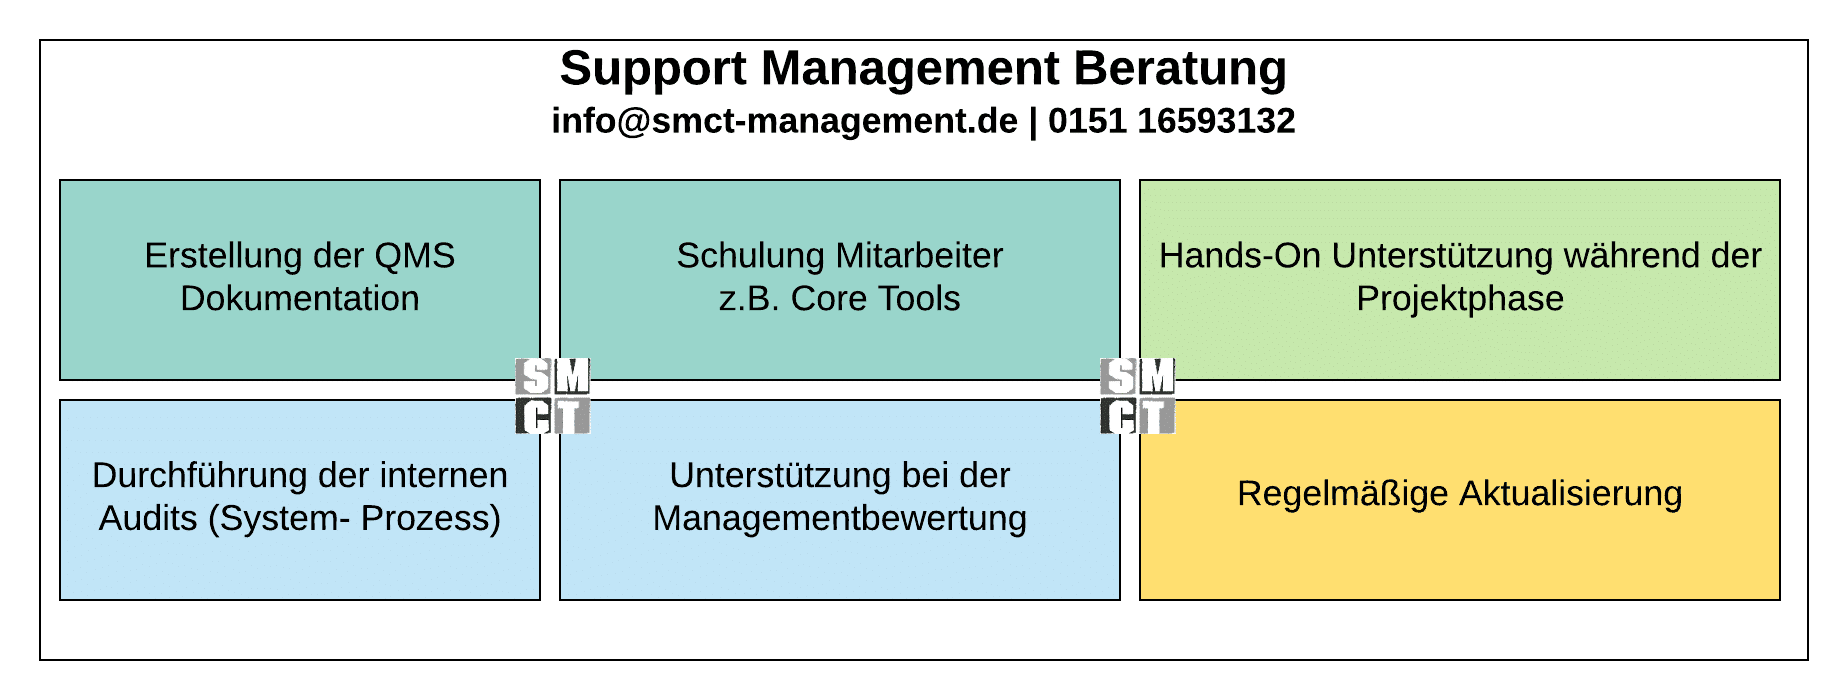 Support Management Beratung | SMCT MANAGEMENT